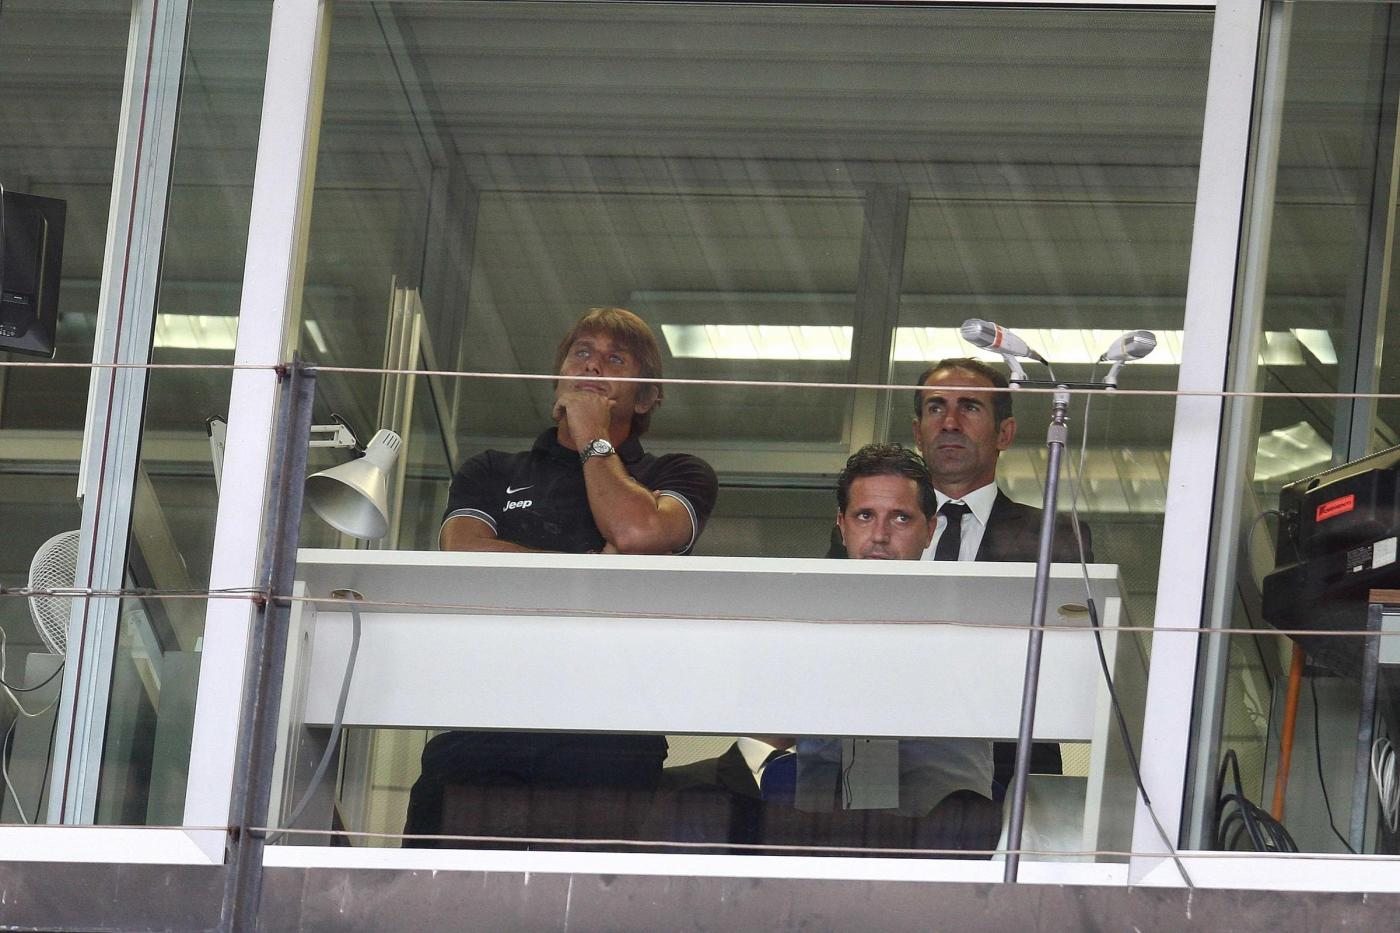 conte-segue-i-suoi-in-tribuna.jpg